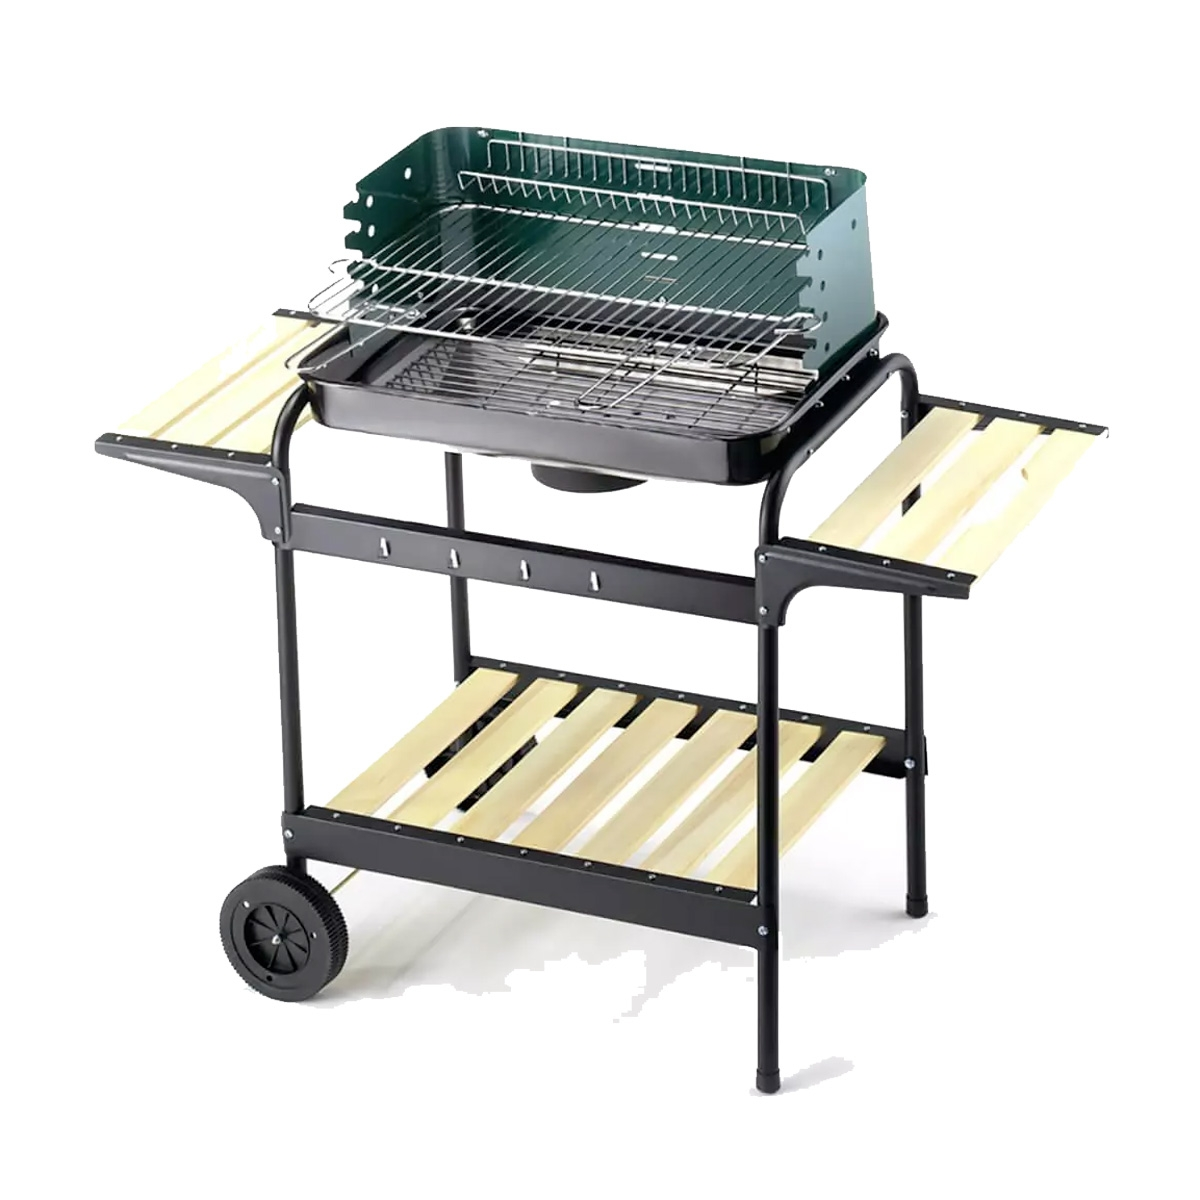 Image of Barbecue a carbonella Ompagrill 60-40 Green/W